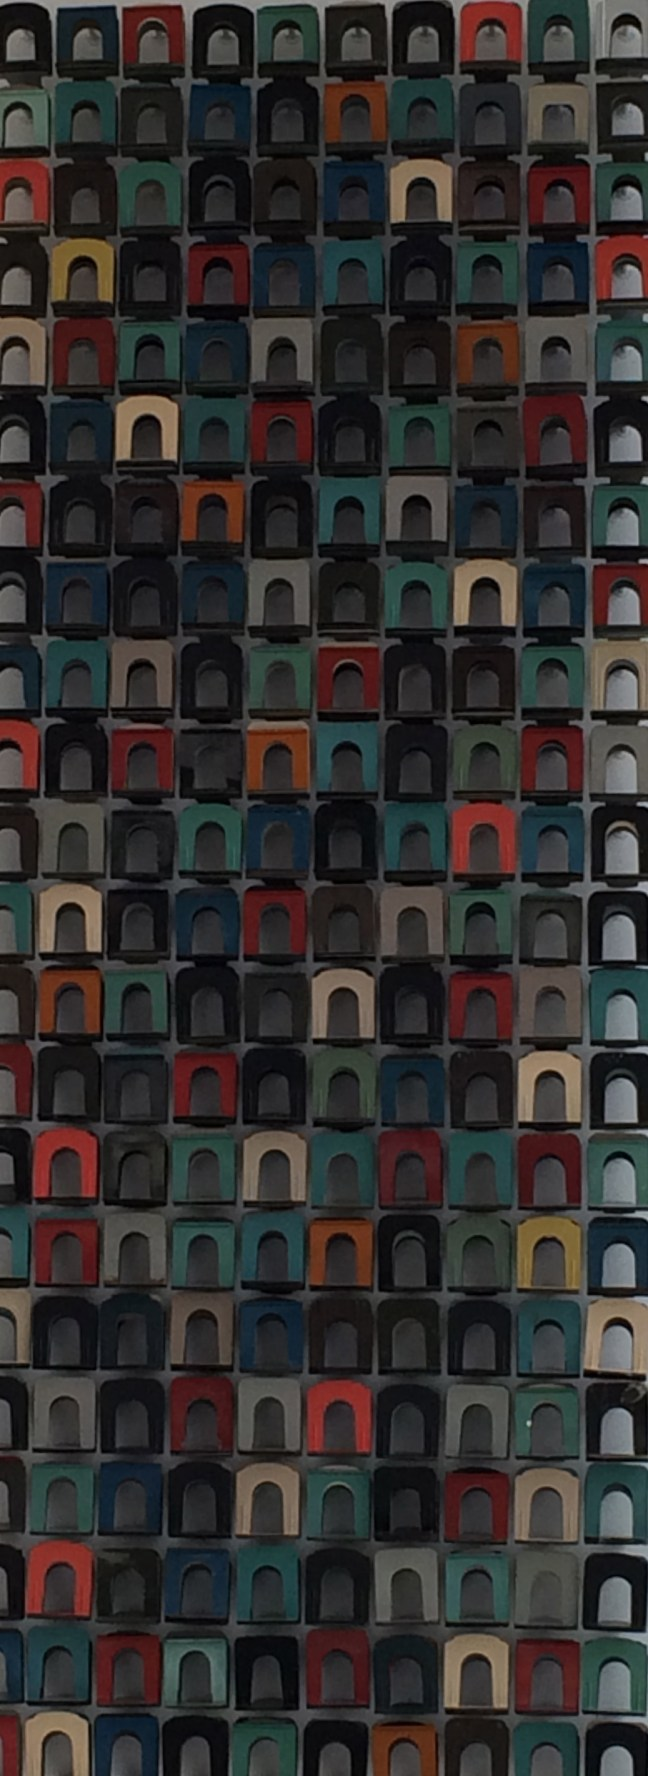 A surprisingly charming work of art hanging in a stairwell, created with colorful old bookends